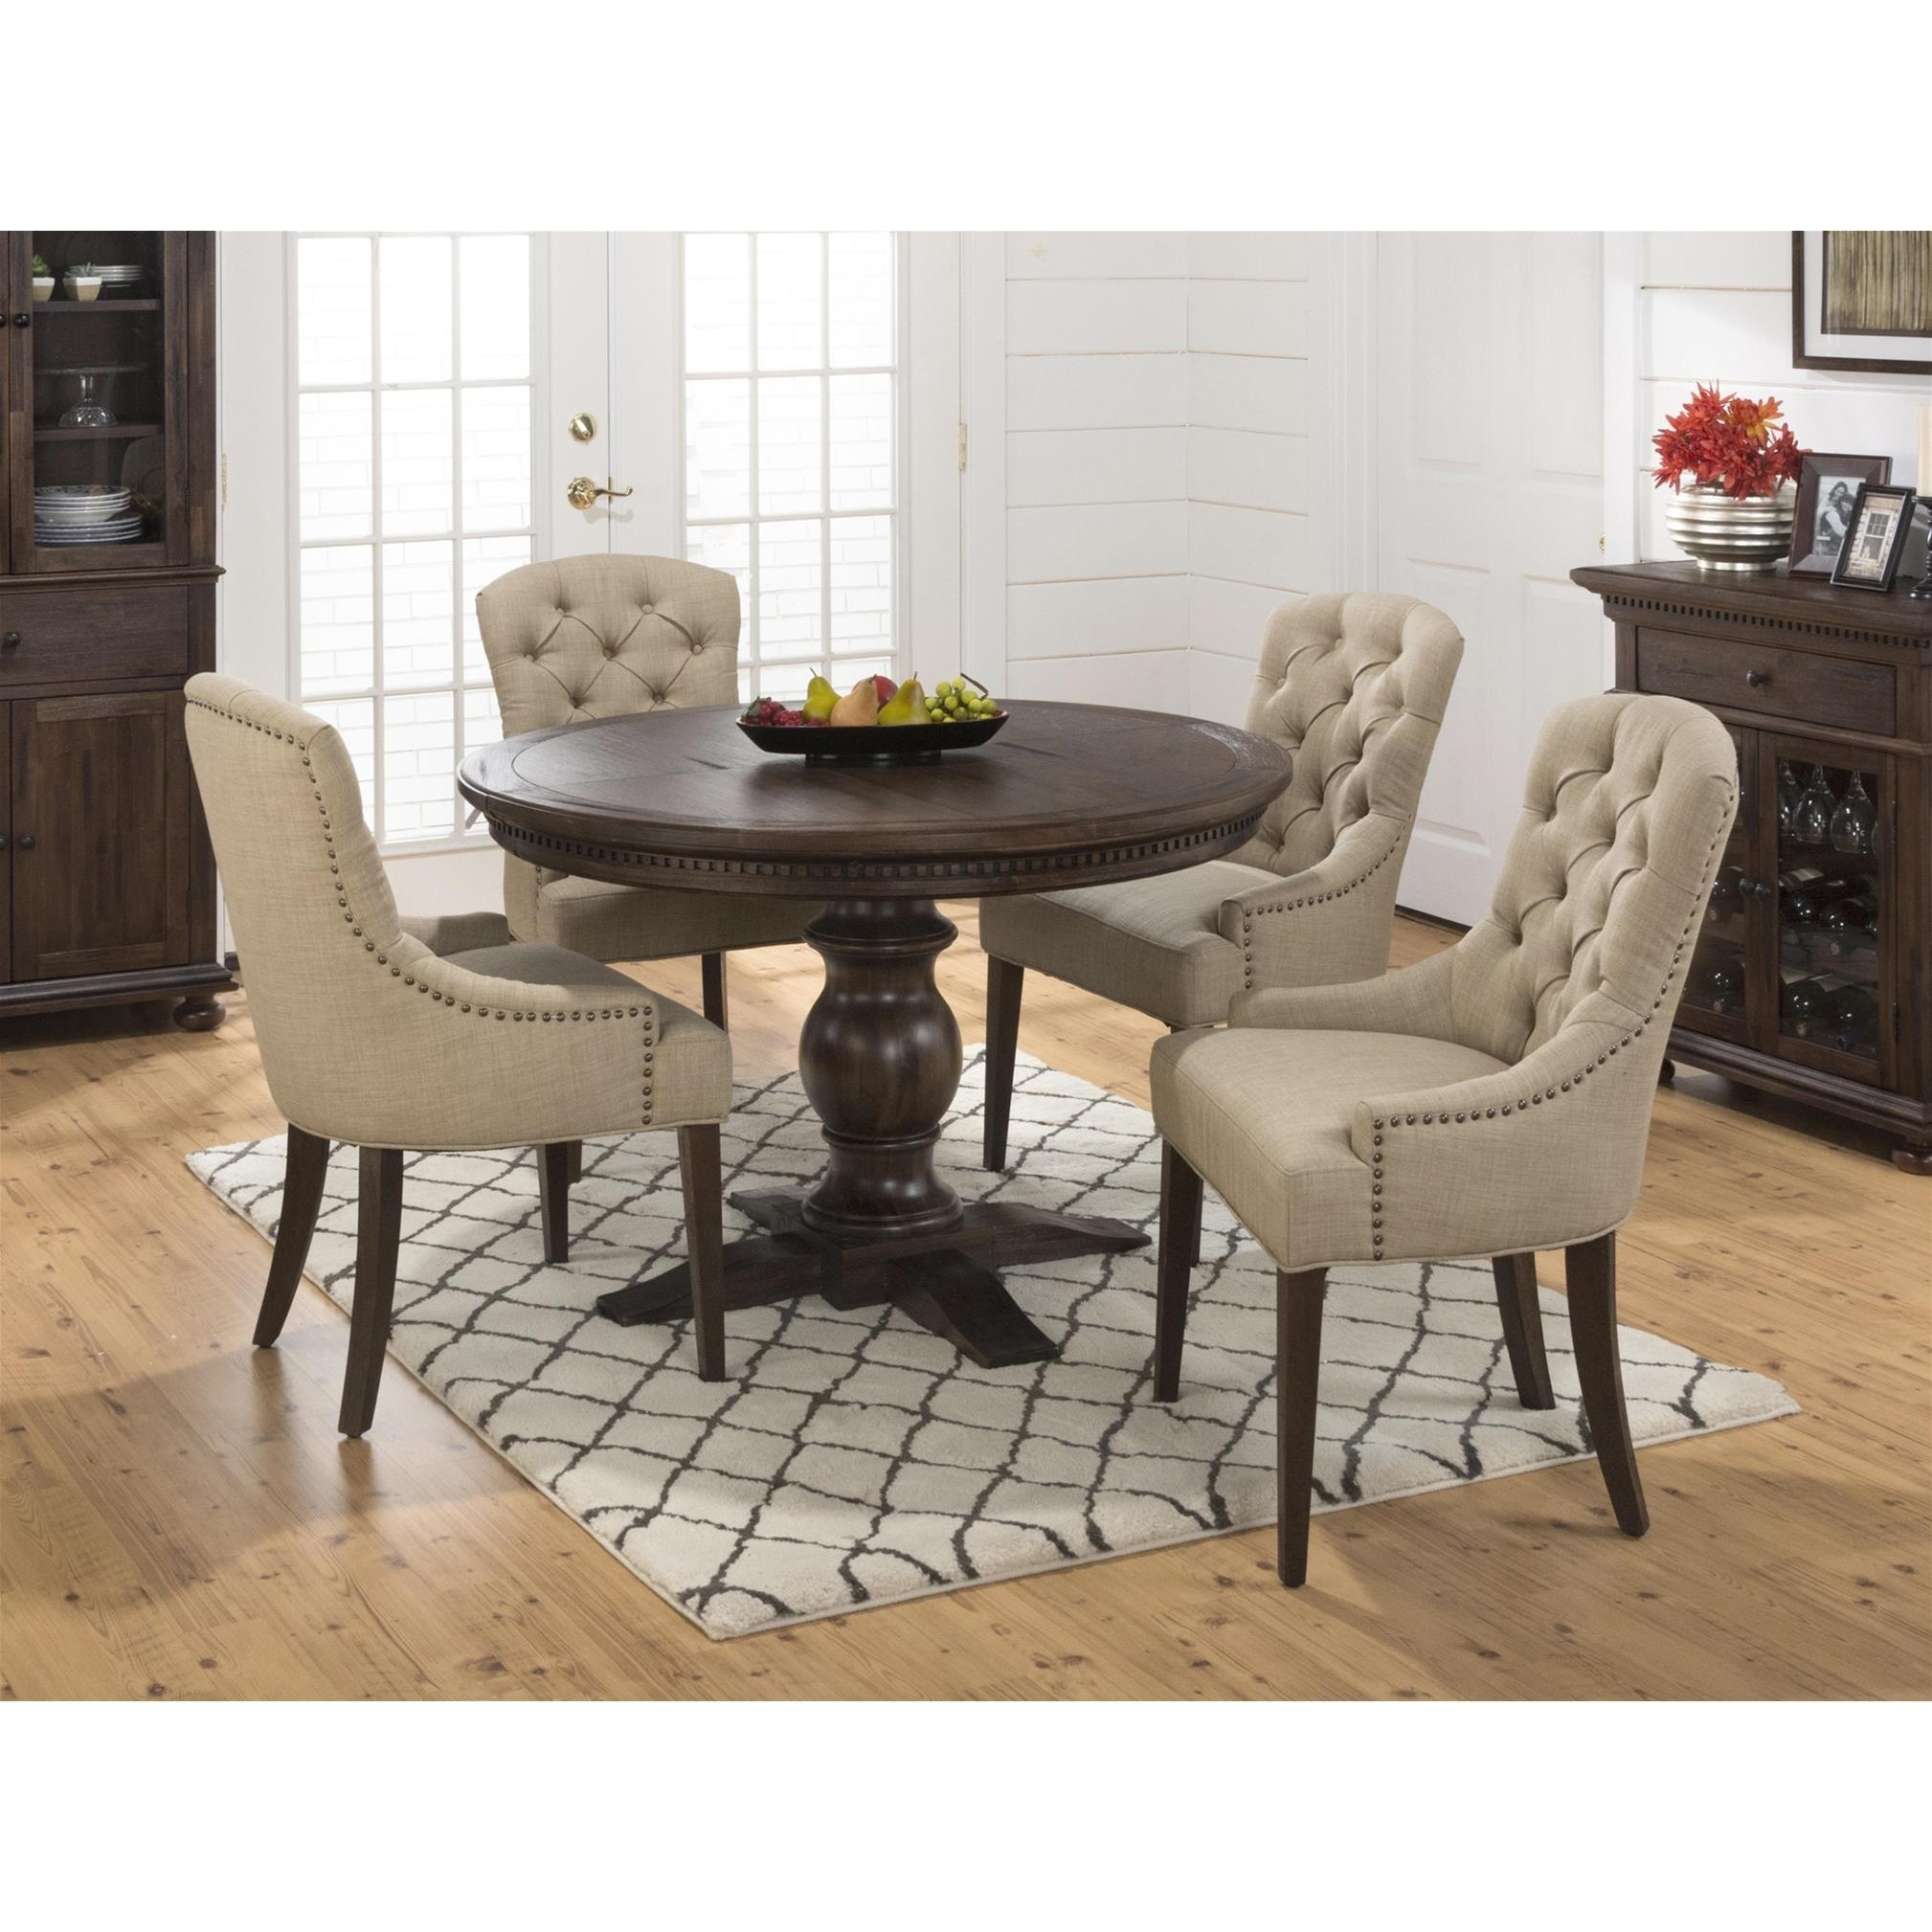 Jofran Geneva Hills 5Pc Round Dining Table Set With Tufted Chairs For Best And Newest Craftsman 5 Piece Round Dining Sets With Uph Side Chairs (Image 12 of 20)